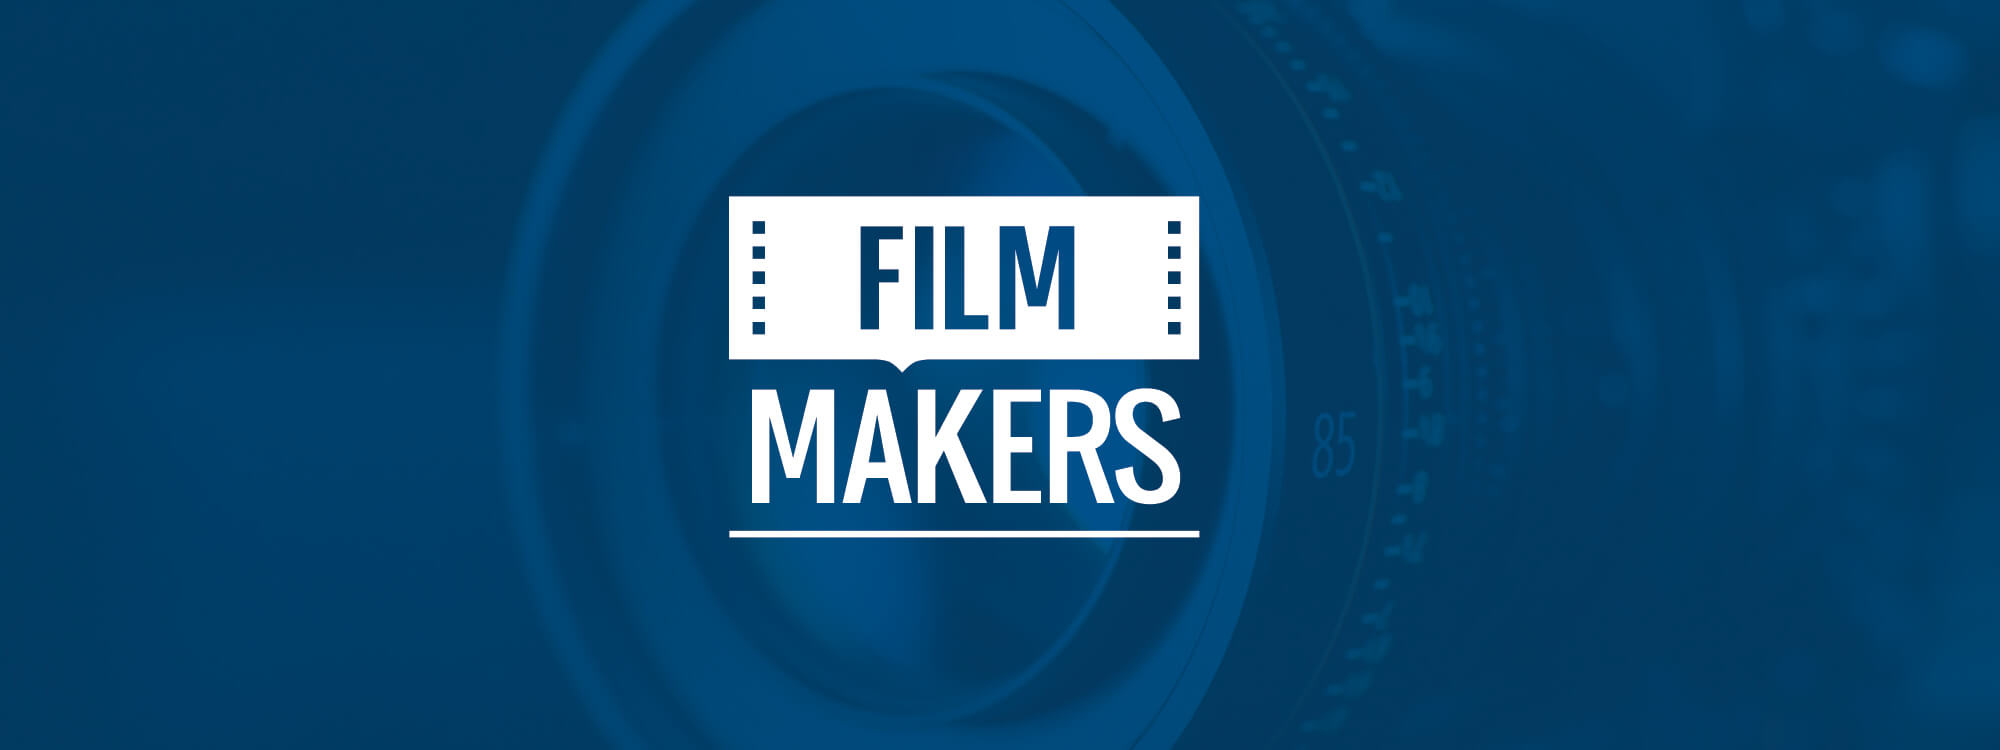 FilmMakers van start